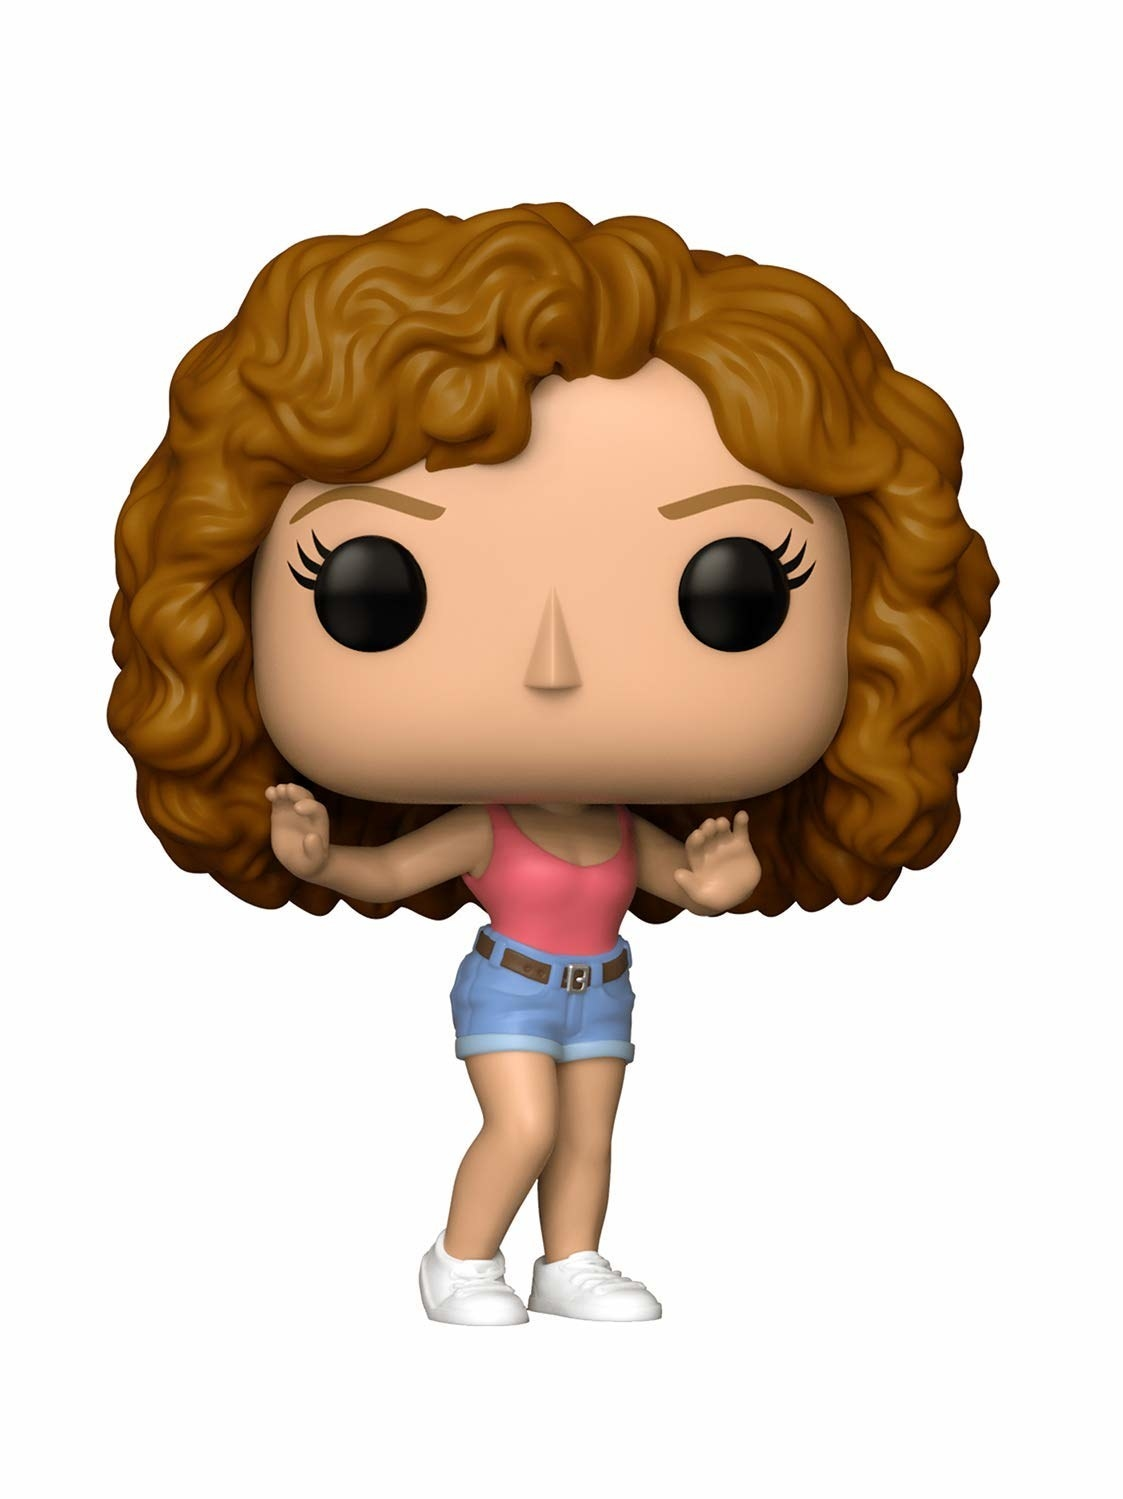 The Baby funko pop in a dancing pose